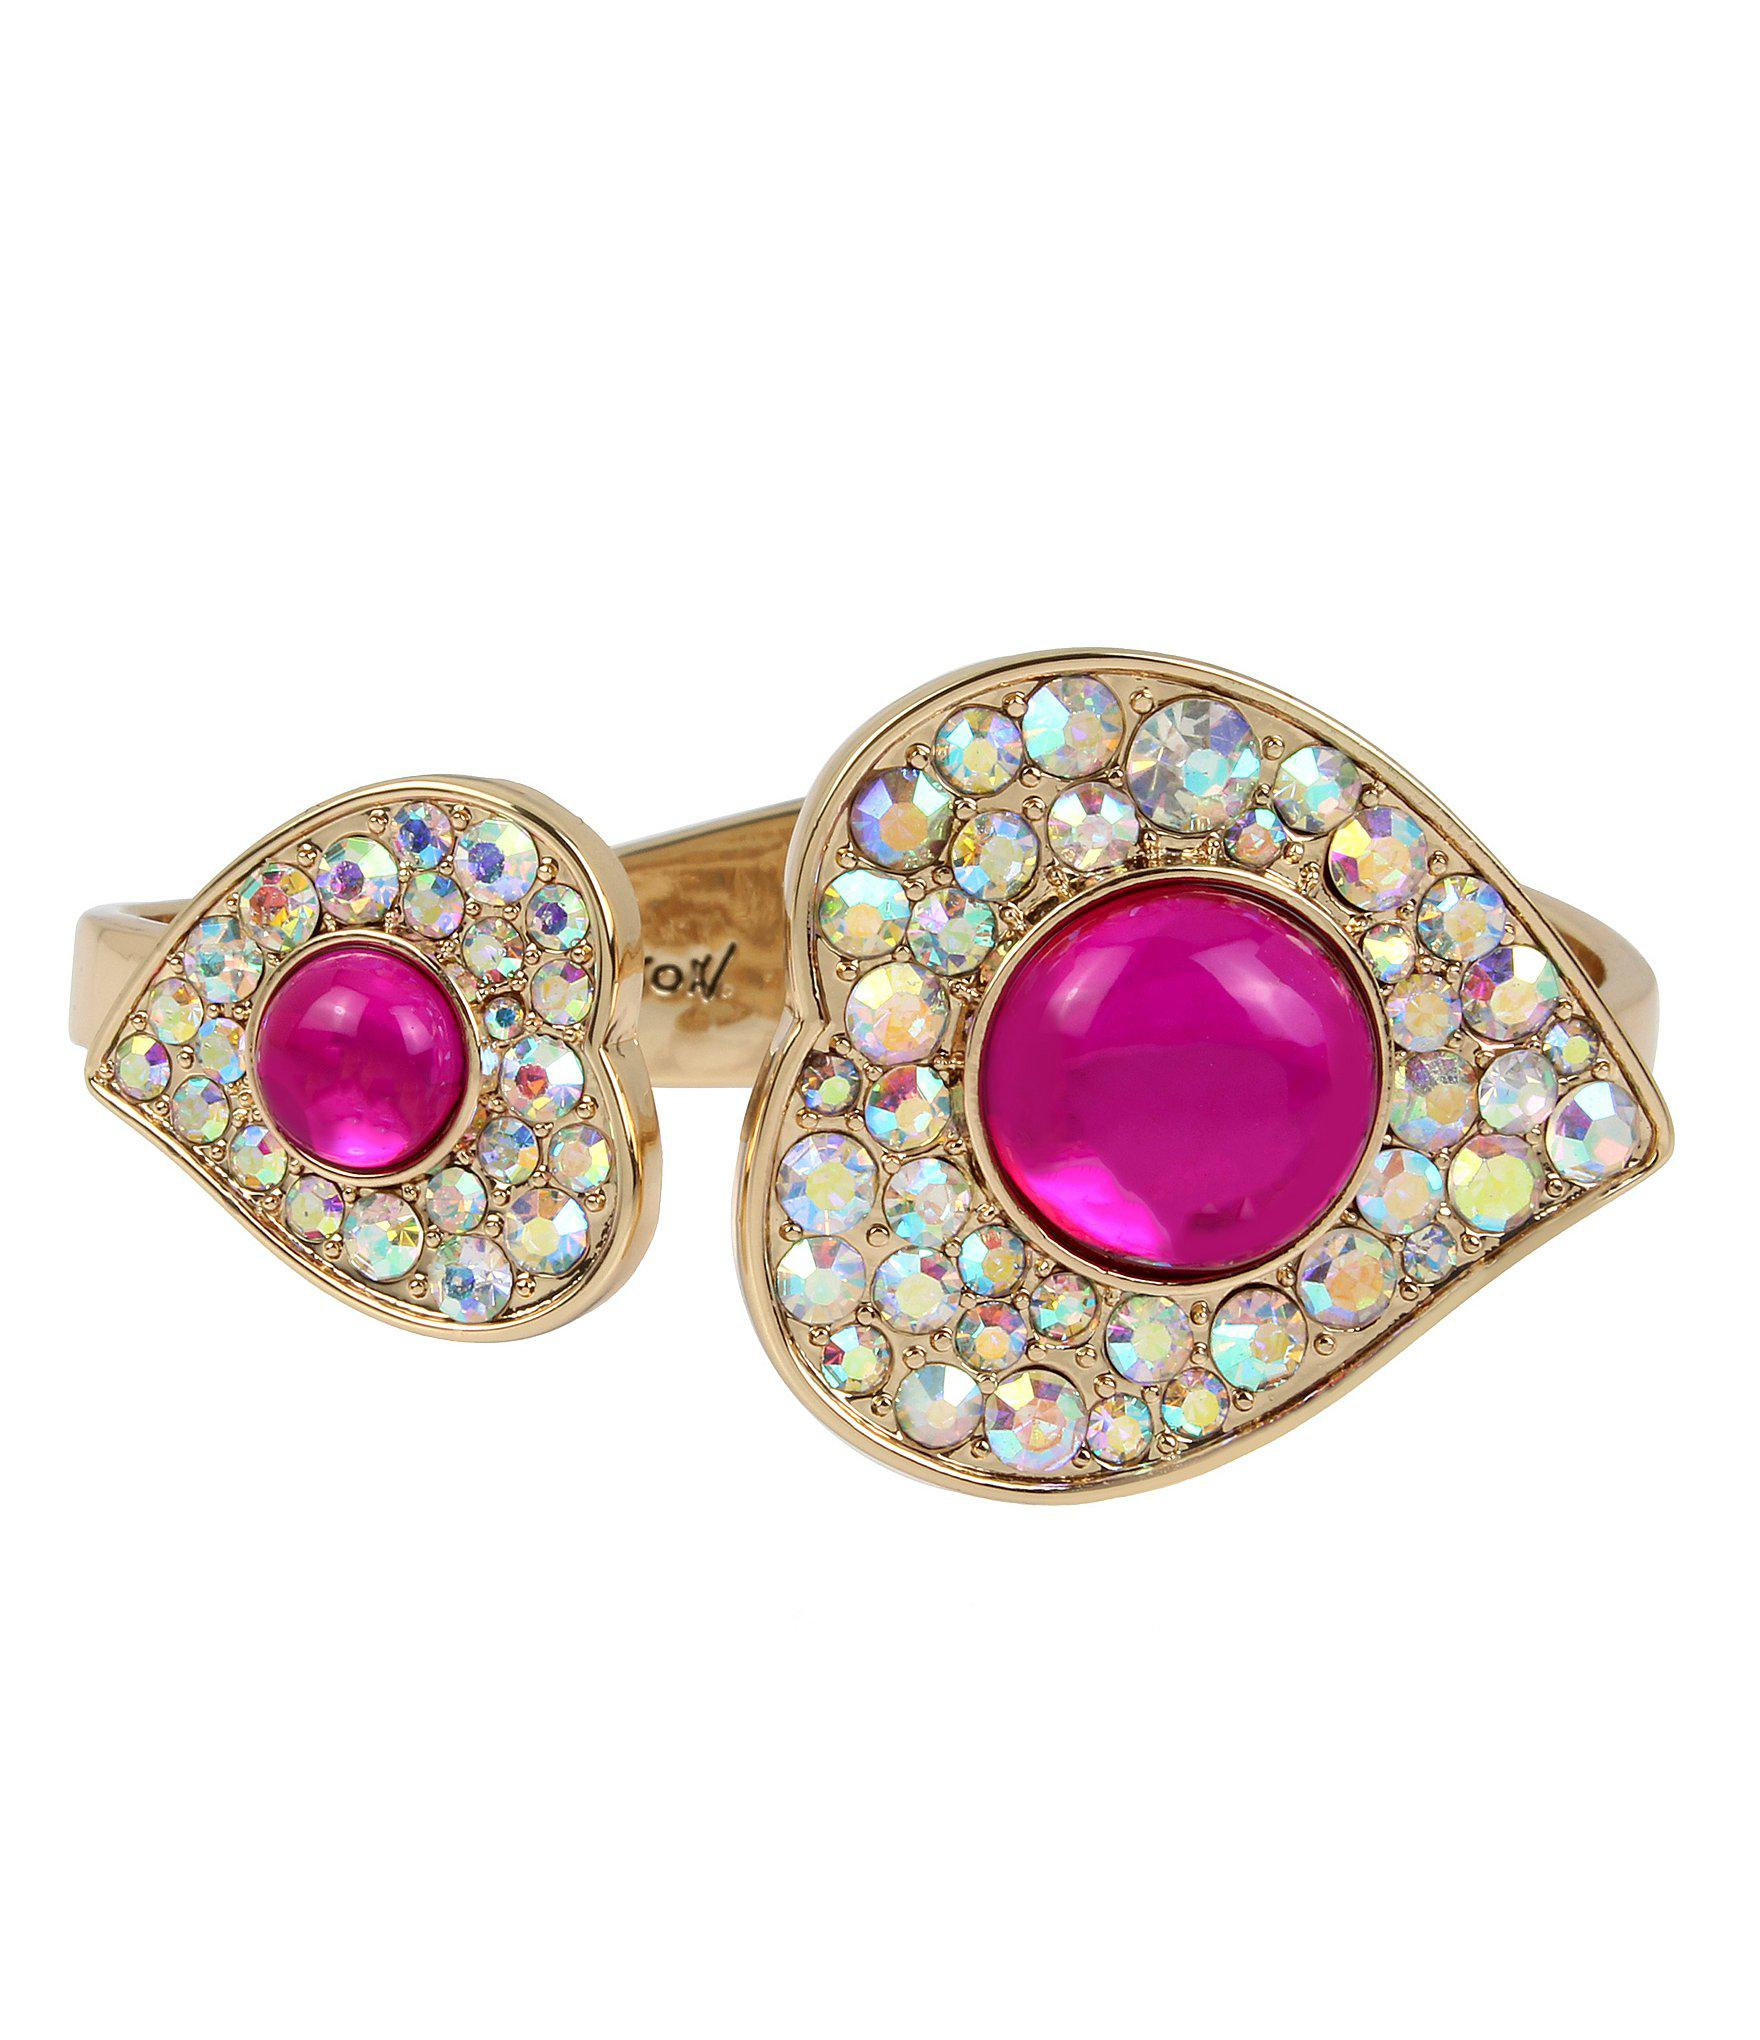 a3a553c76b5ca Lyst - Betsey Johnson Heart Hinged Bangle Bracelet in Pink